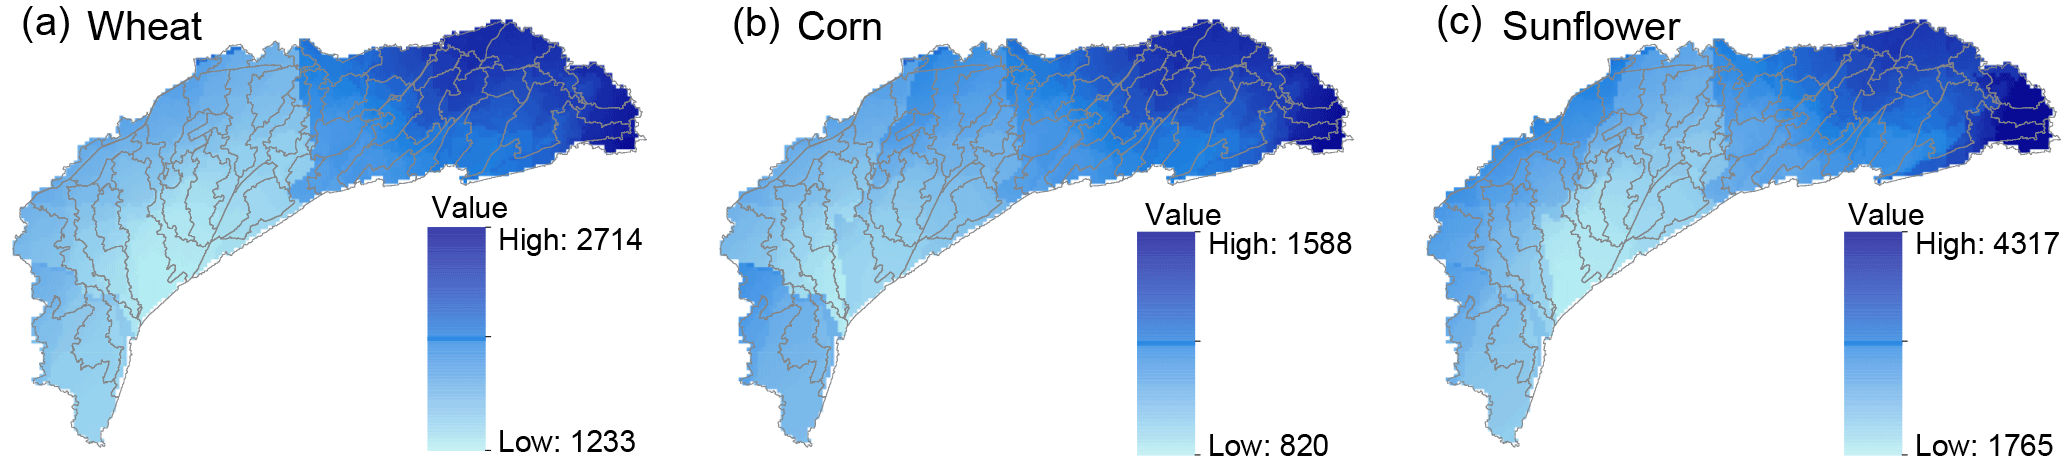 HESS - An improved method for calculating the regional crop